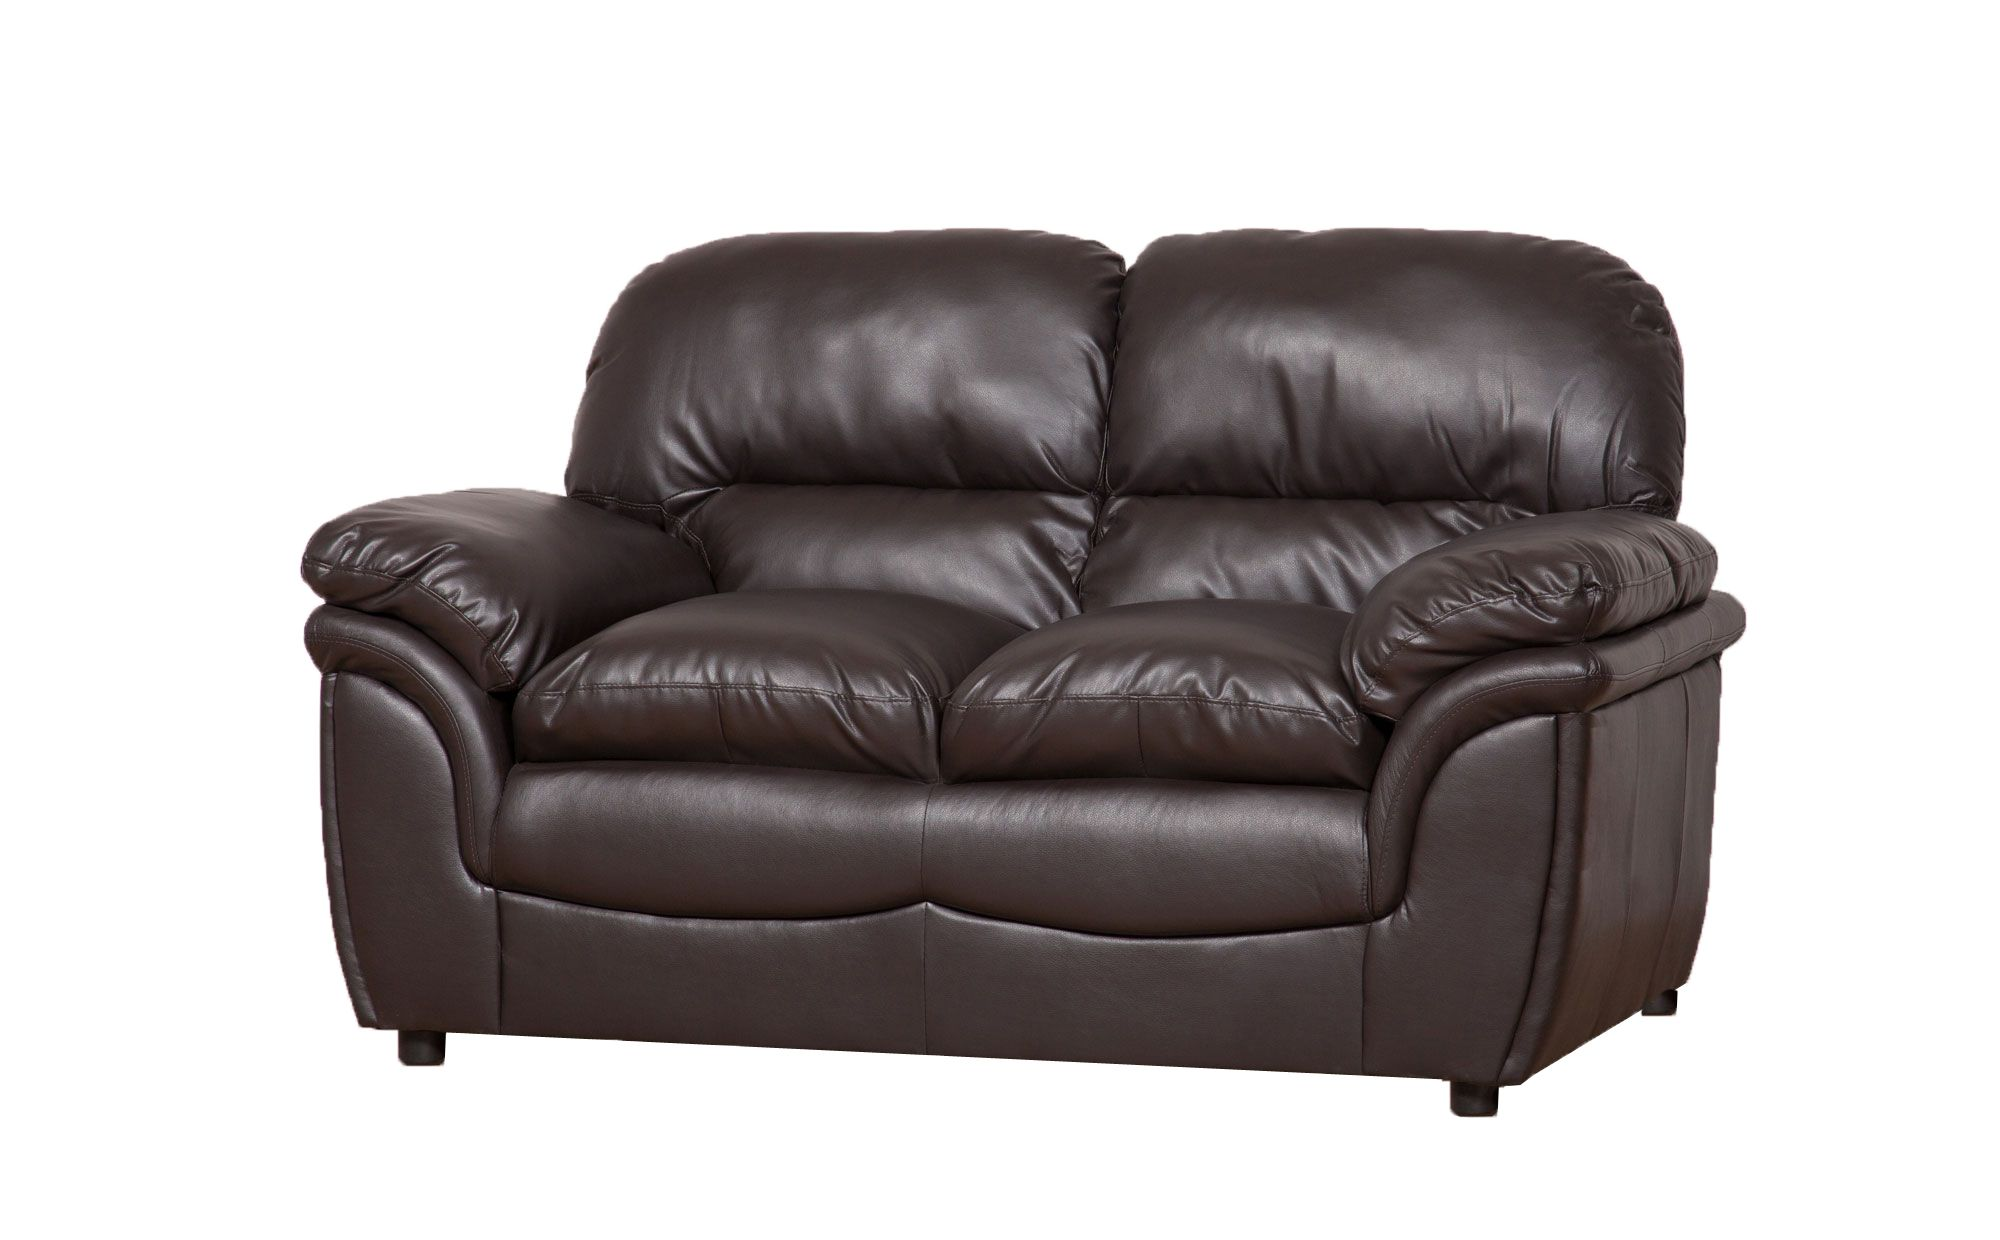 Rochester Brown Leather Sofa 299 99